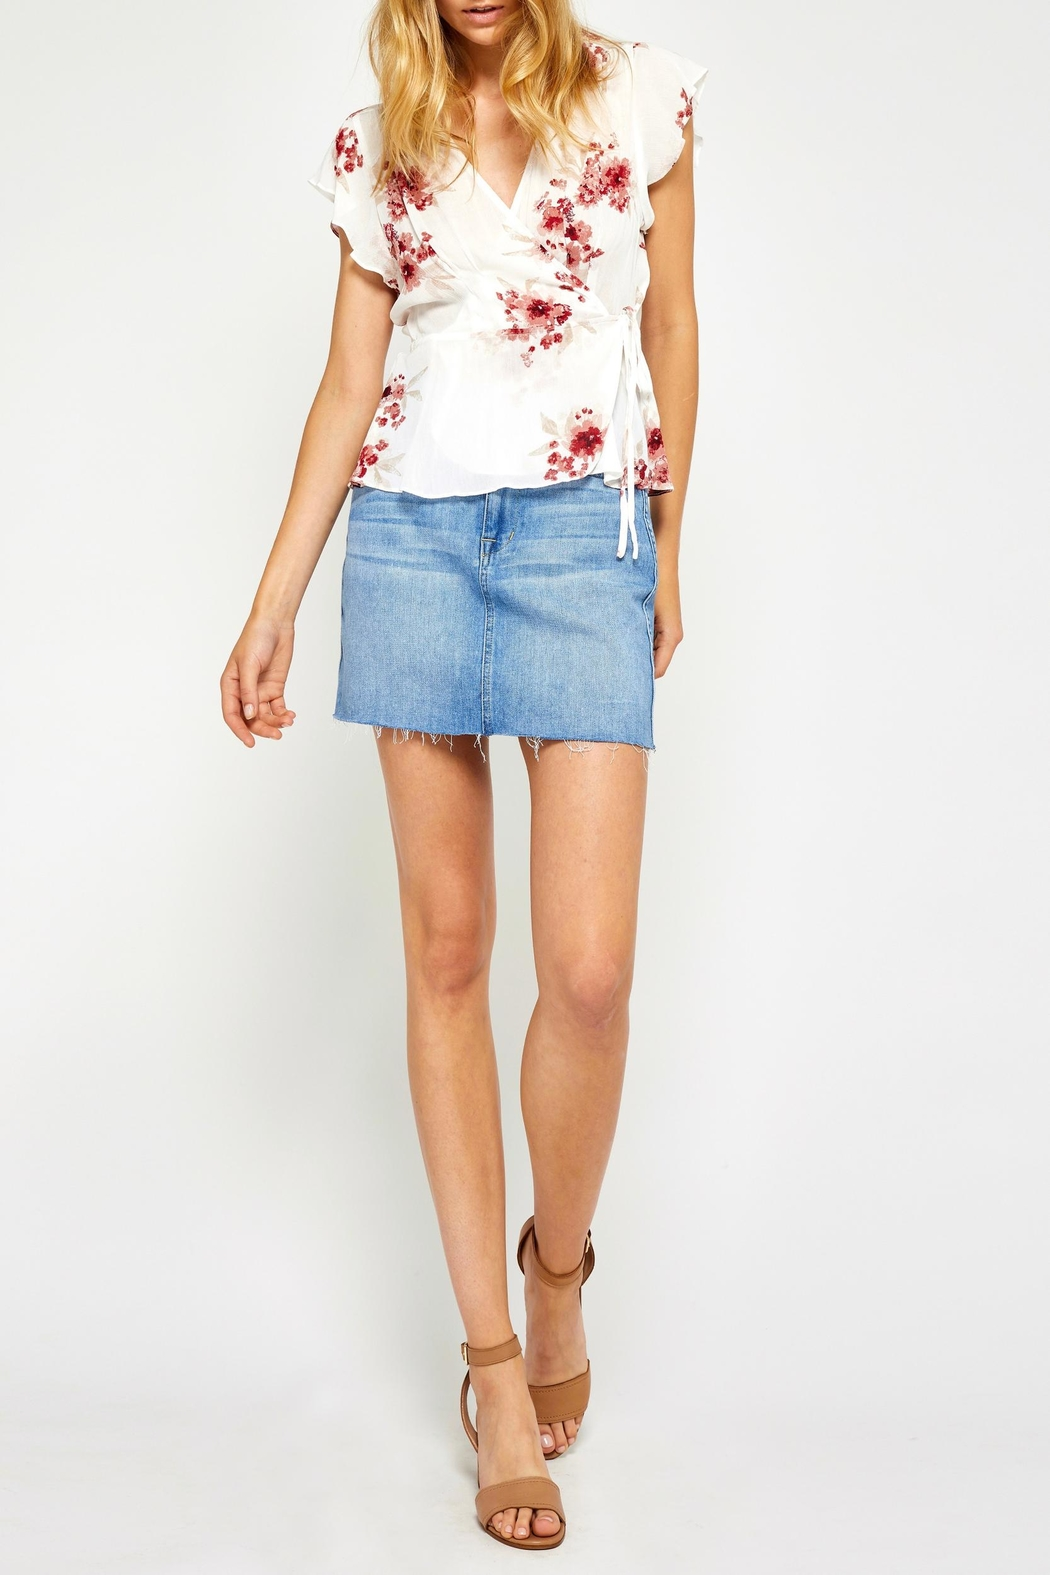 Gentle Fawn Floral Wrap Top - Front Full Image